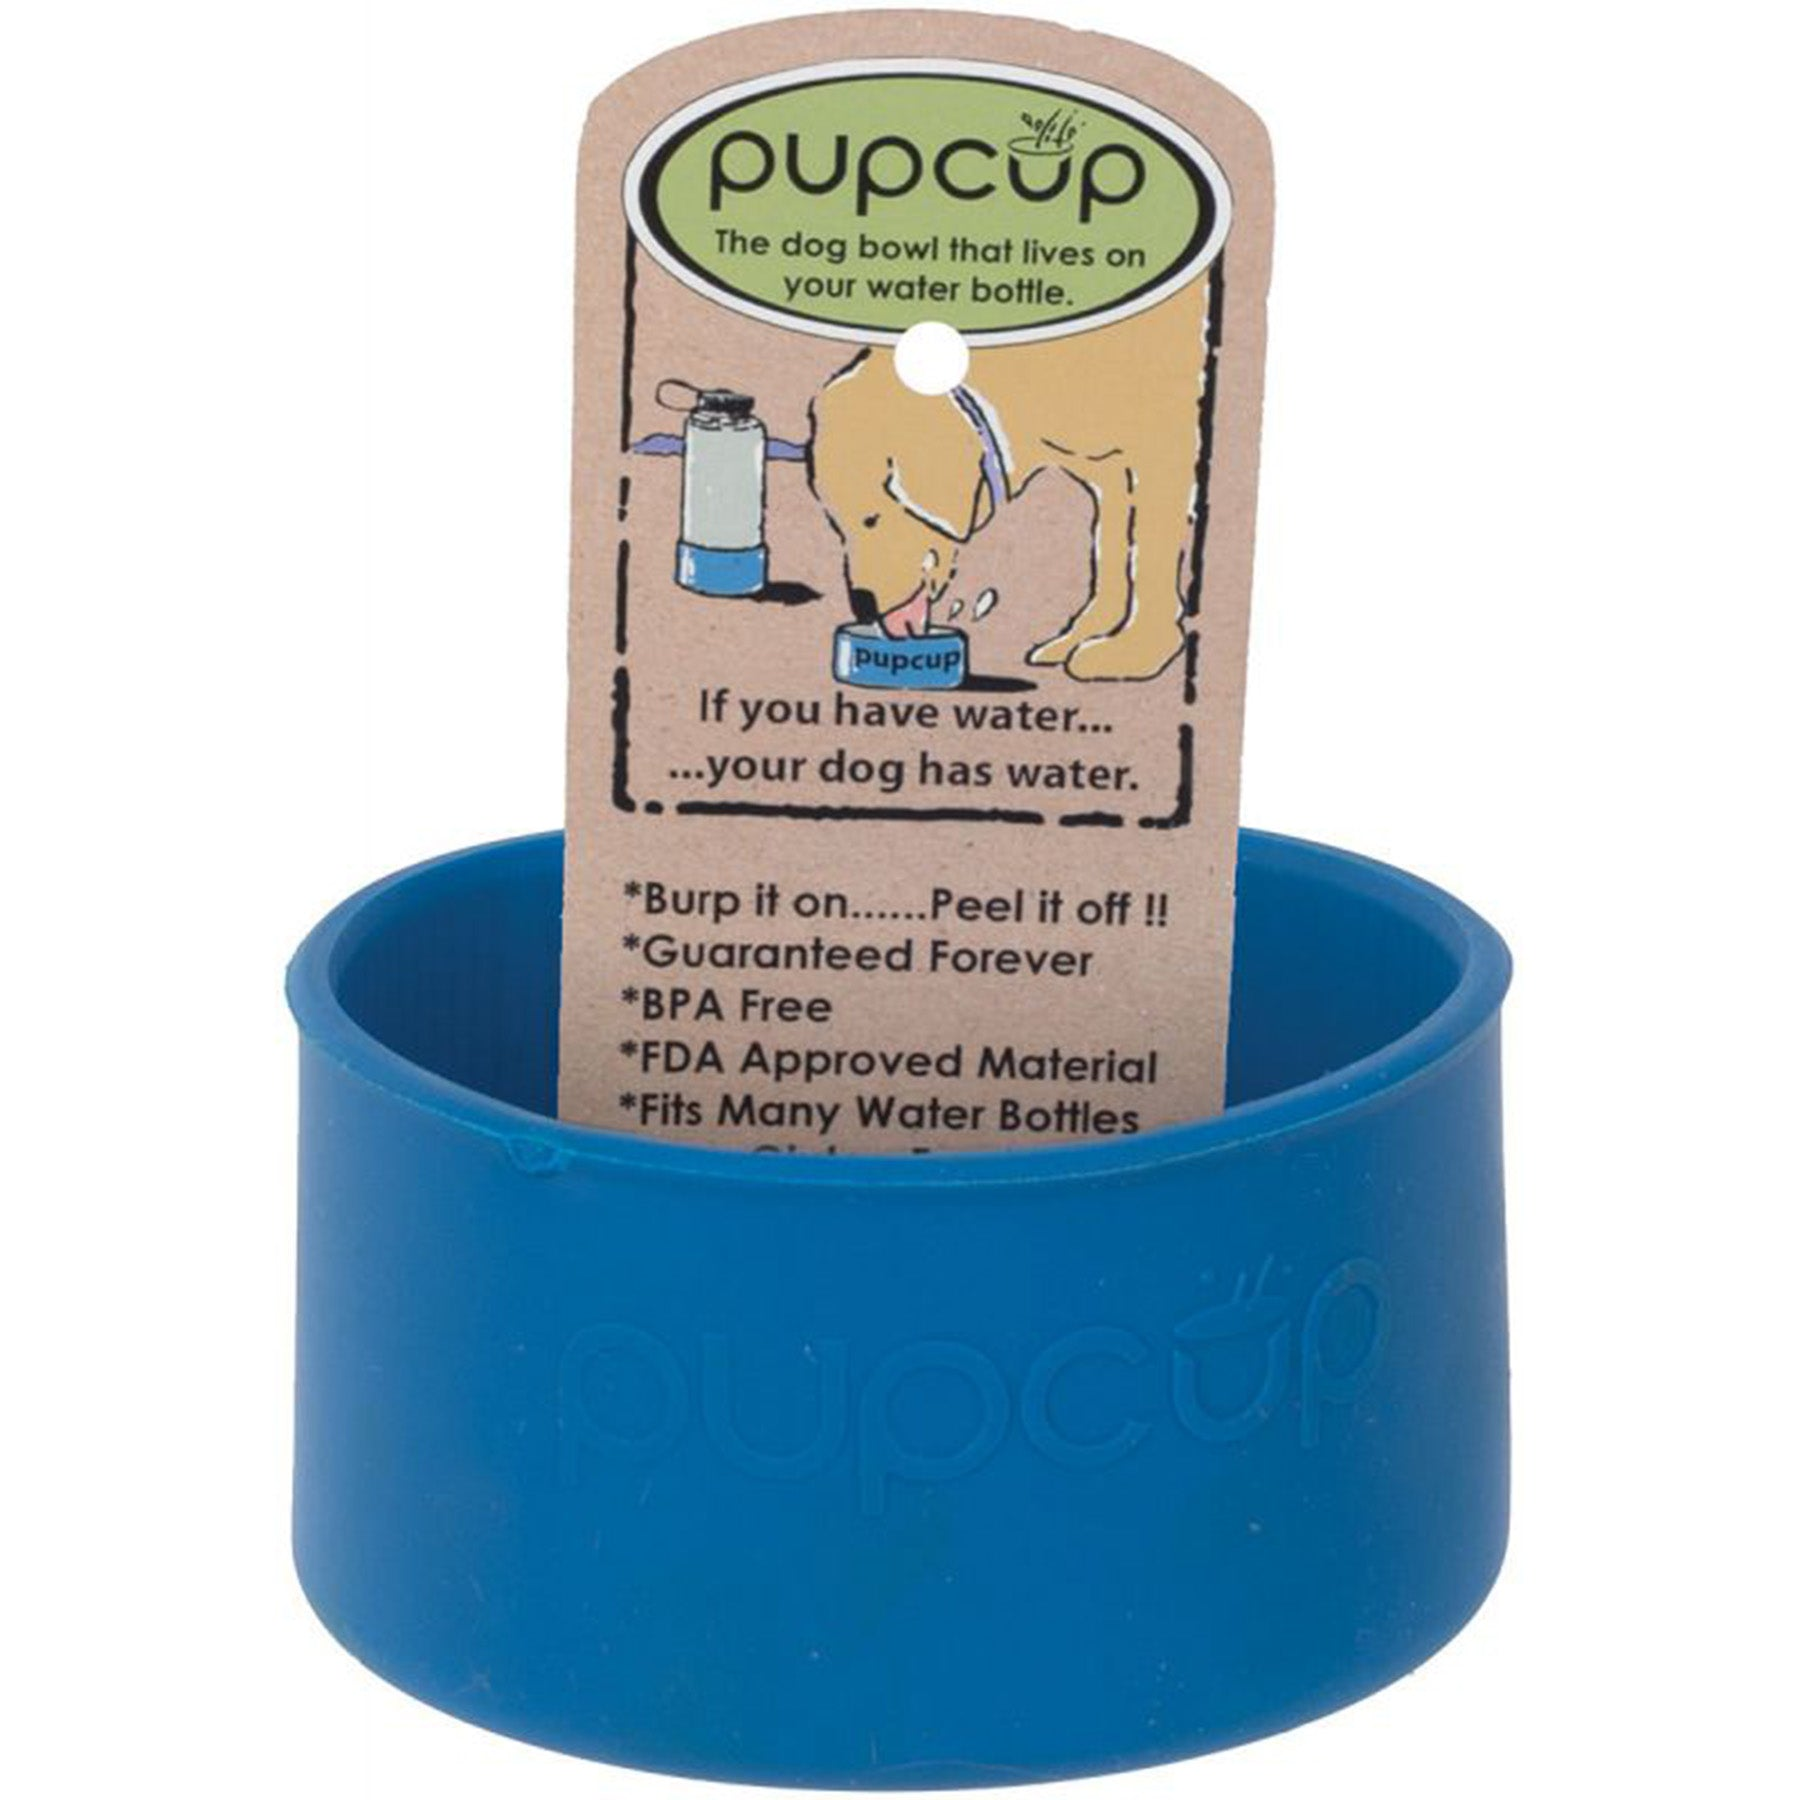 The blue pup cup